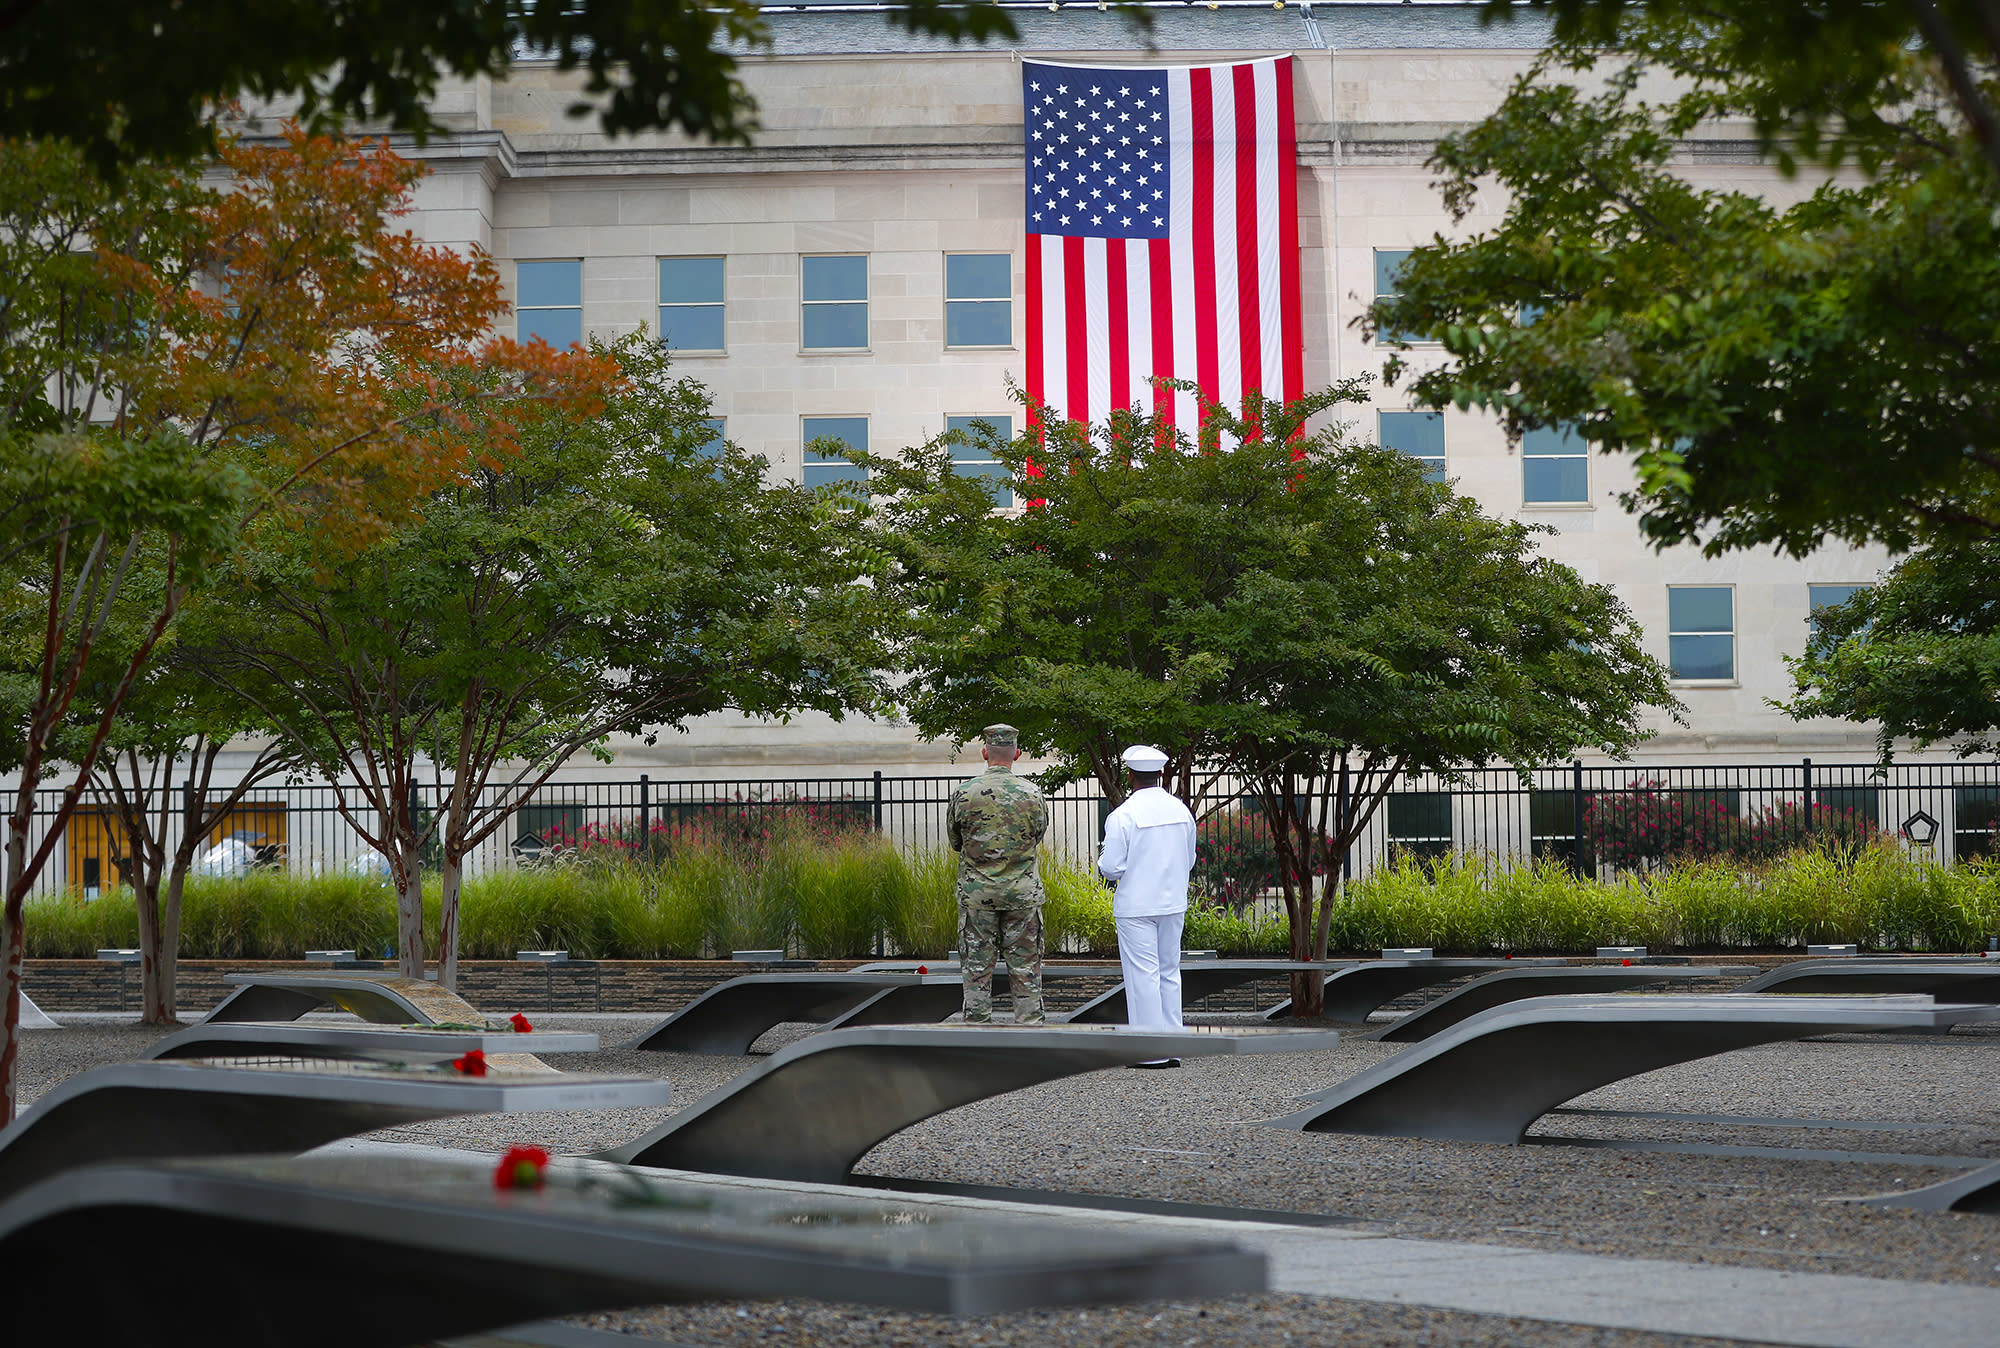 <p>Members of the military are seen on the grounds of the National 9/11 Pentagon Memorial before the start of the September 11th Pentagon Memorial Observance at the Pentagon on the 17th anniversary of the September 11th attacks, Tuesday, Sept. 11, 2018. (AP Photo/Pablo Martinez Monsivais) </p>